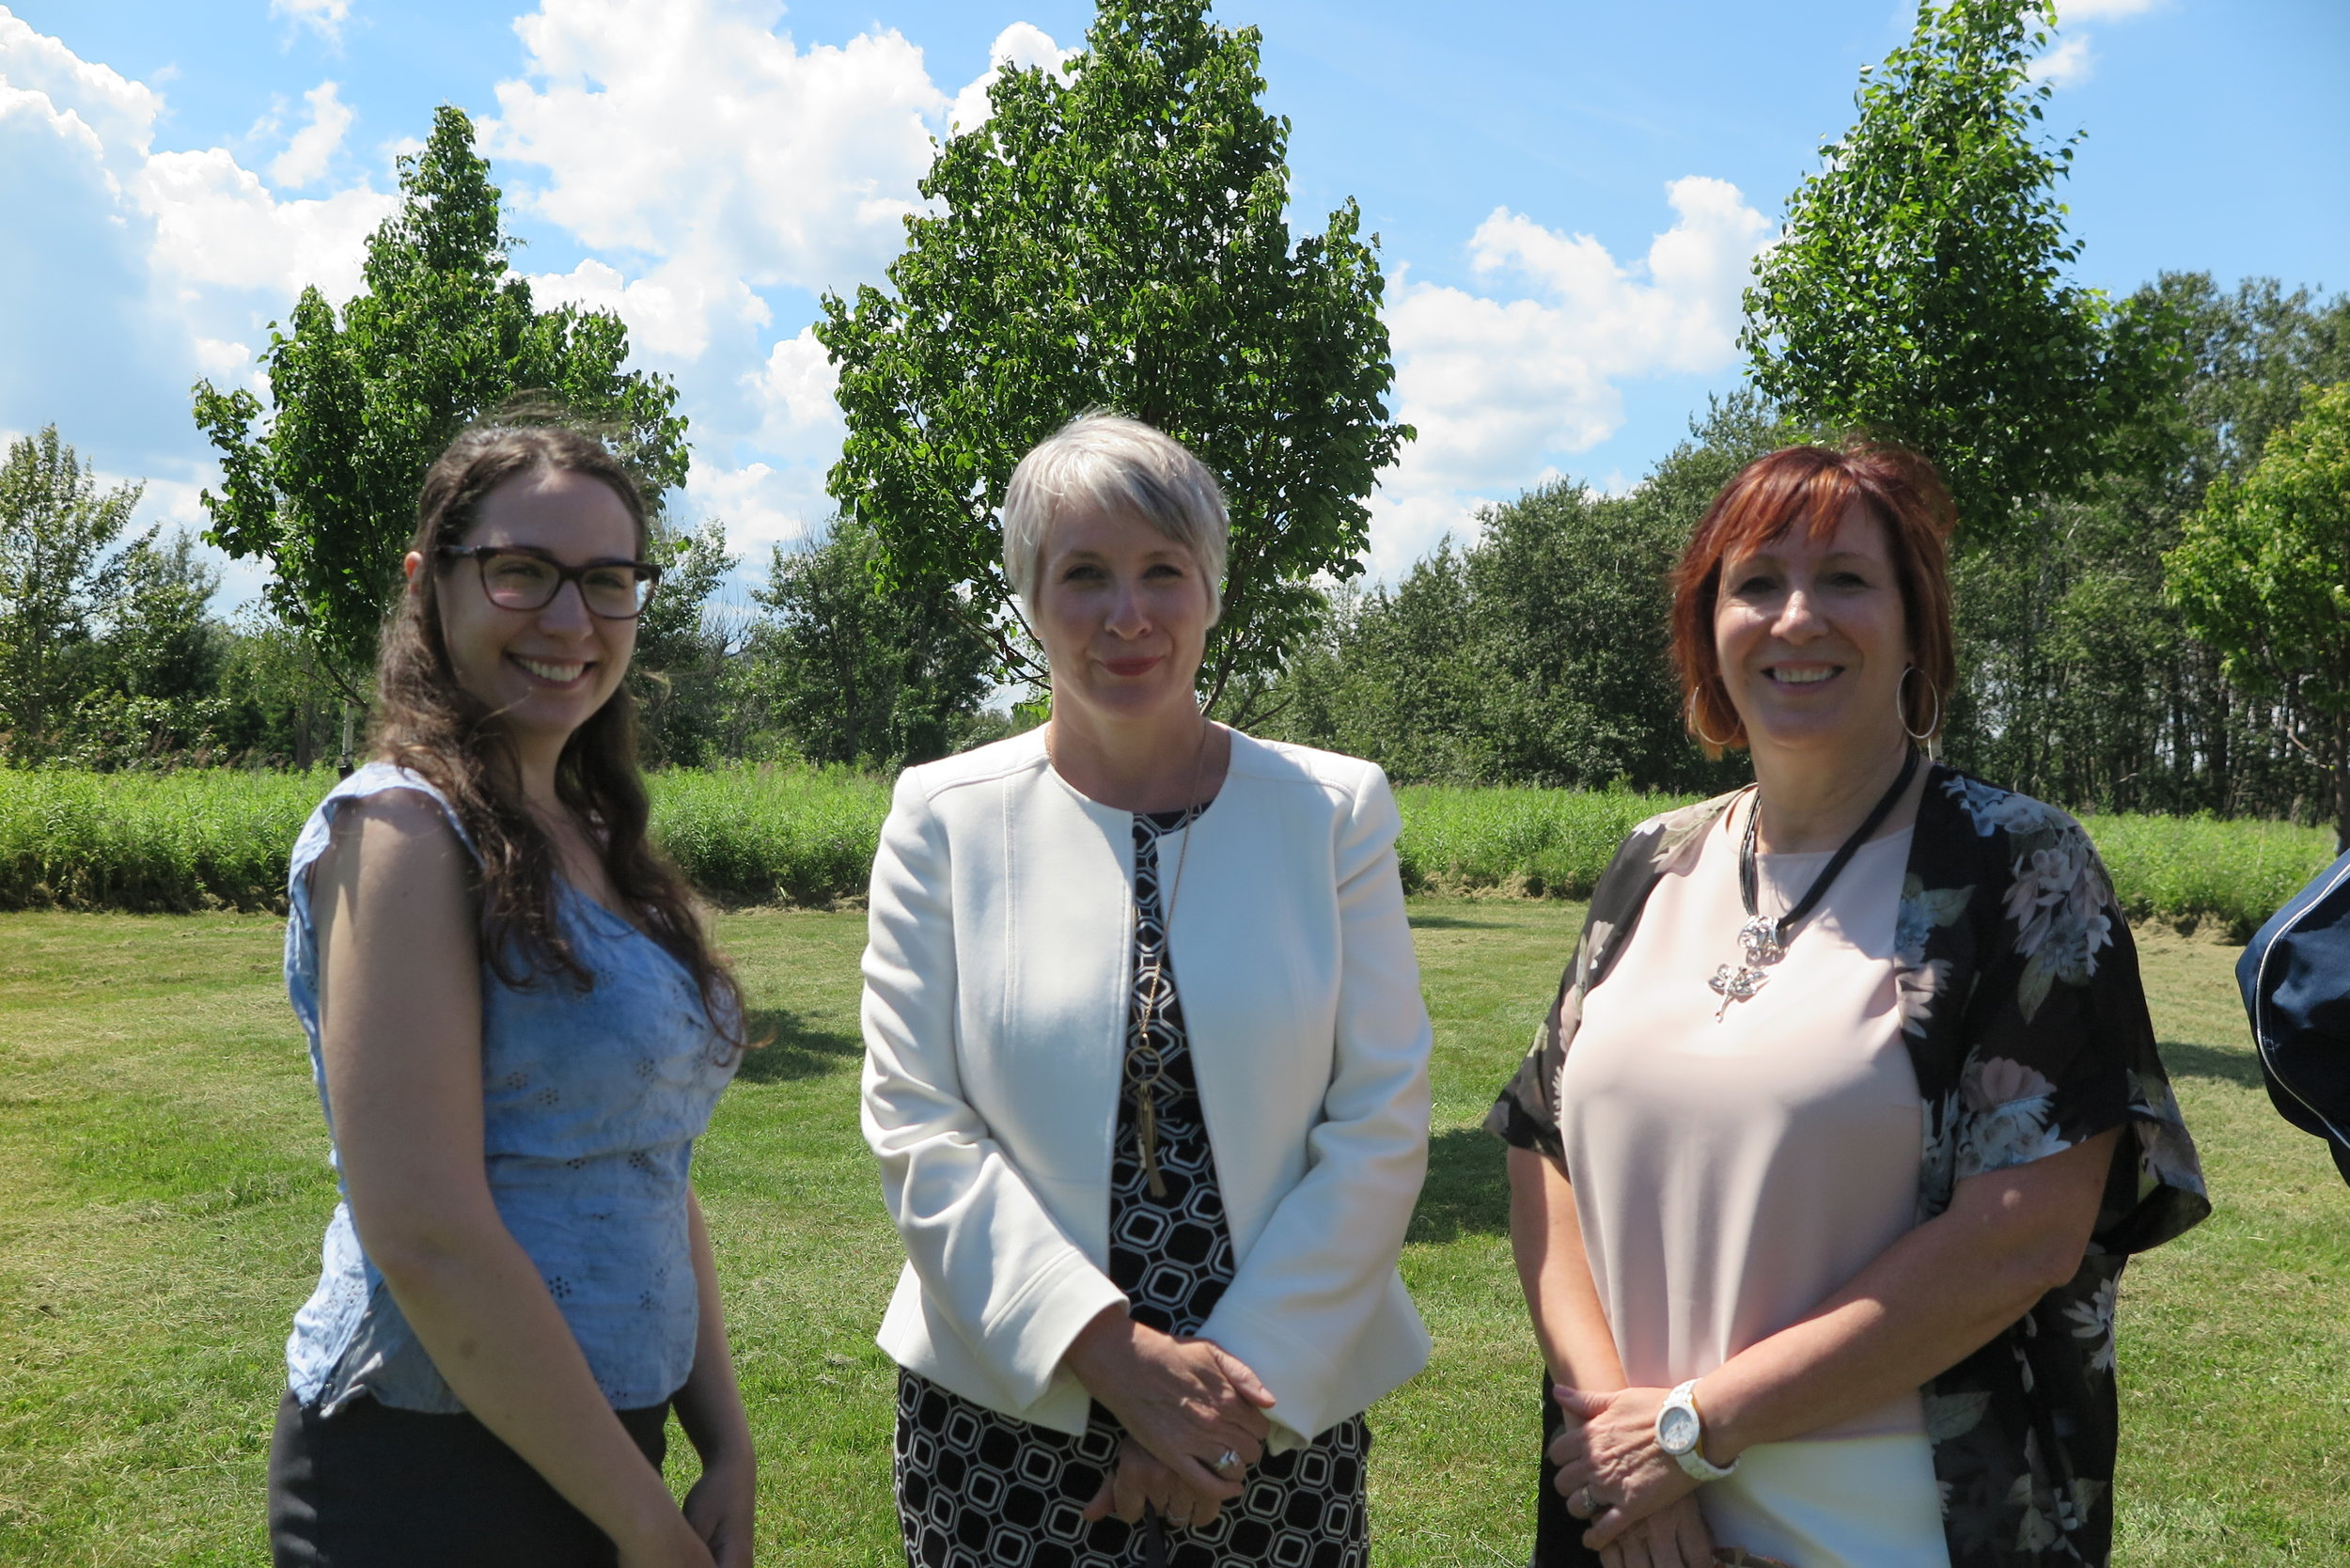 Youth intern Claire Thiébaut, the Honourable Patty Hajdu, Minister of Employment, Workforce Development and Labour and Member of Parliament for Thunder Bay-Superior North, and chair of Coopérative du ROFTB Inc. Claudette Gleeson